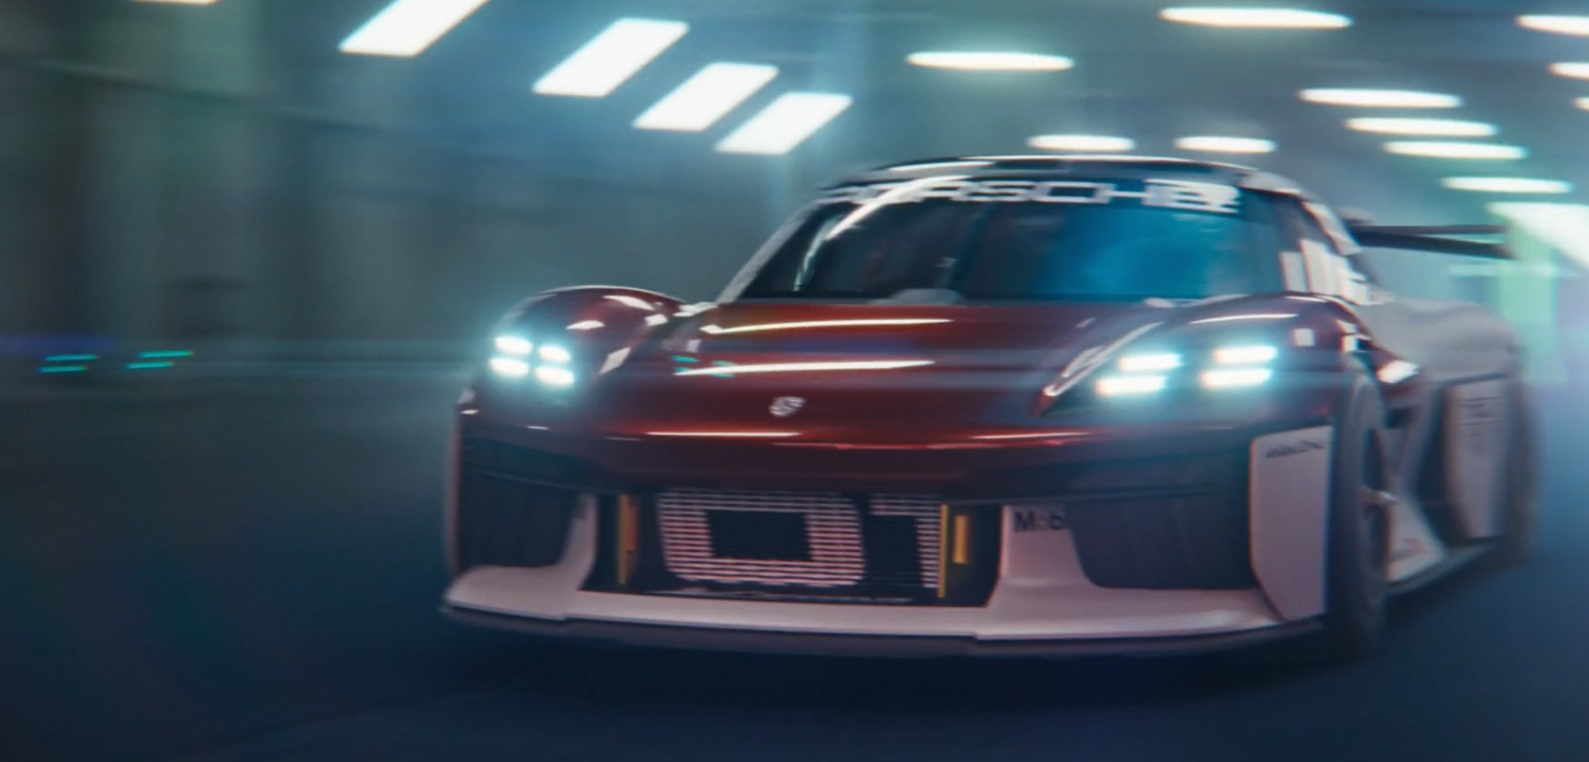 Porsche Mission R CGI Short Clip Suggests the Germans Are About to Fight Back